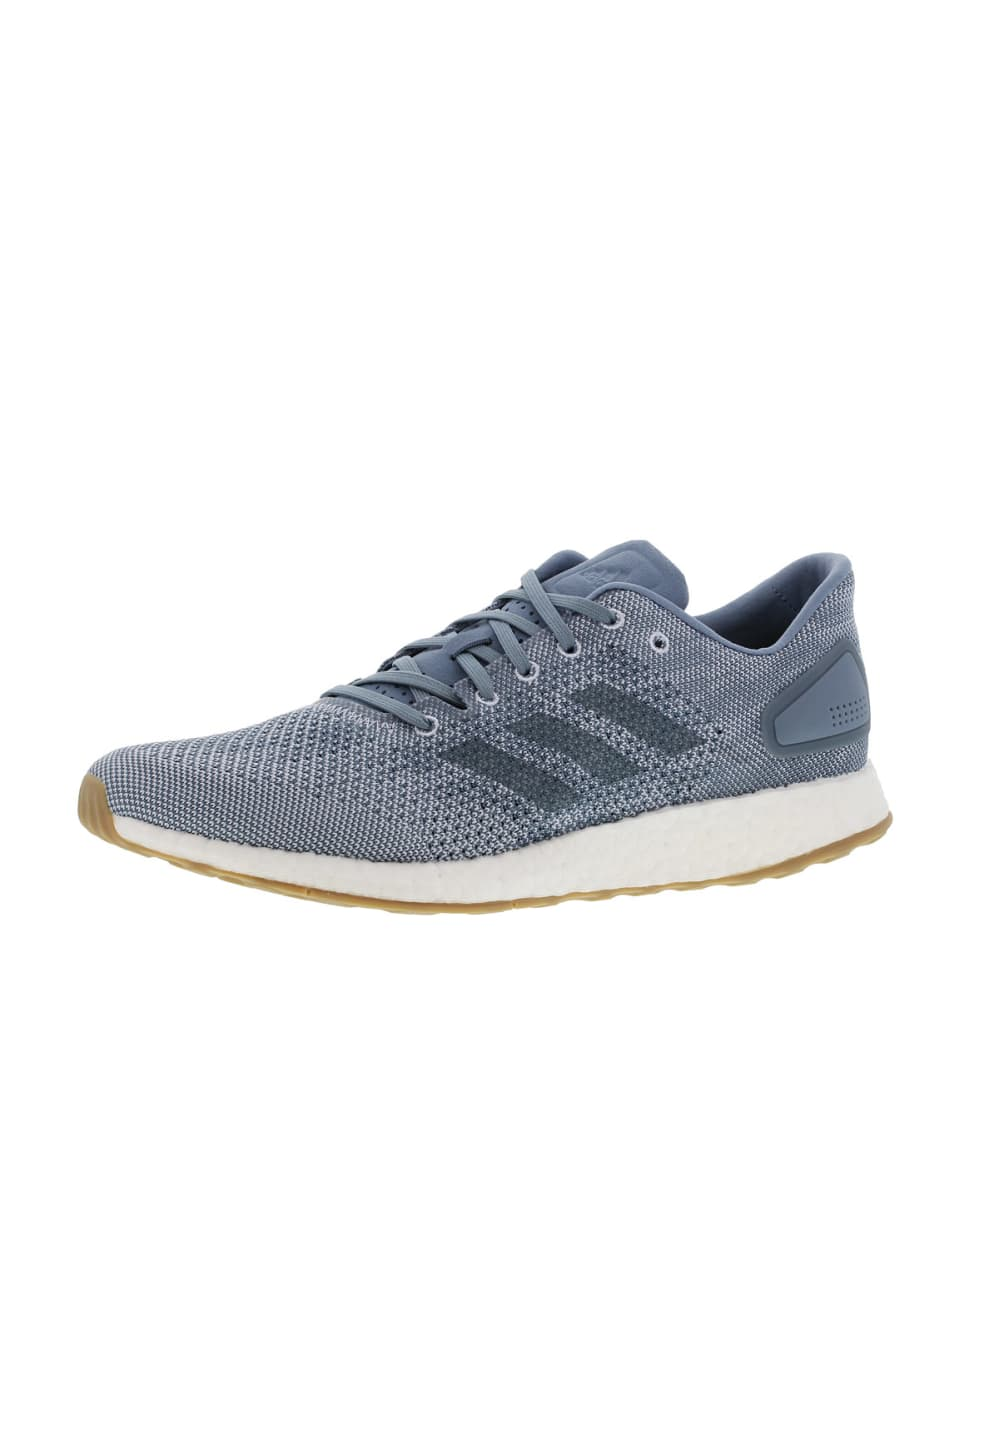 8fa1d31c2f173 Next. -60%. This product is currently out of stock. adidas. Pure Boost Dpr  - Running shoes for Men